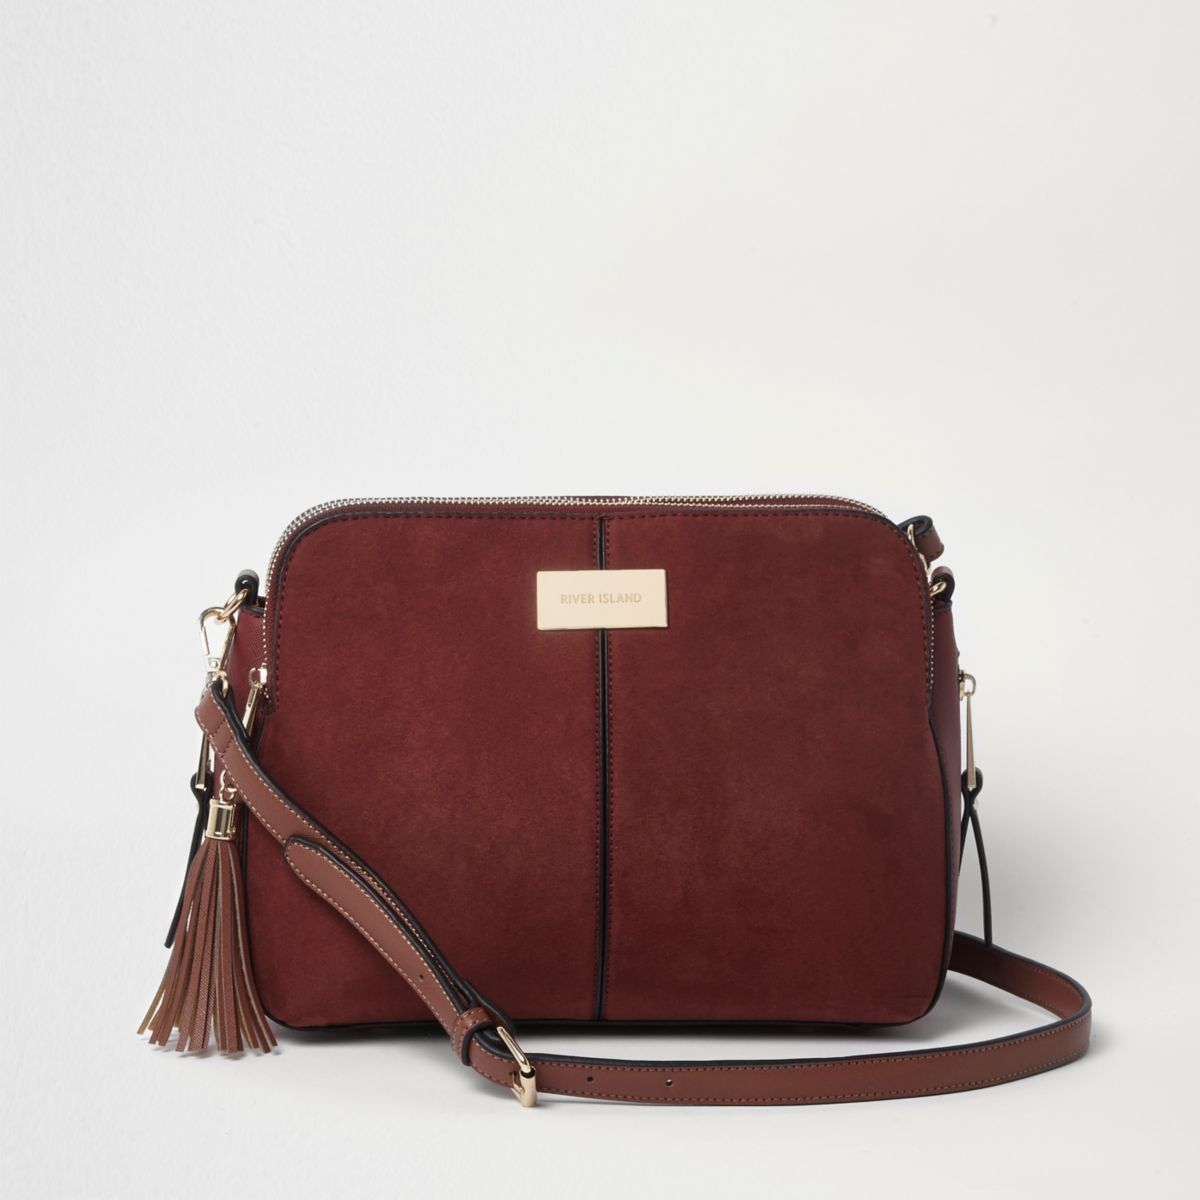 Rust red triple compartment cross body bag